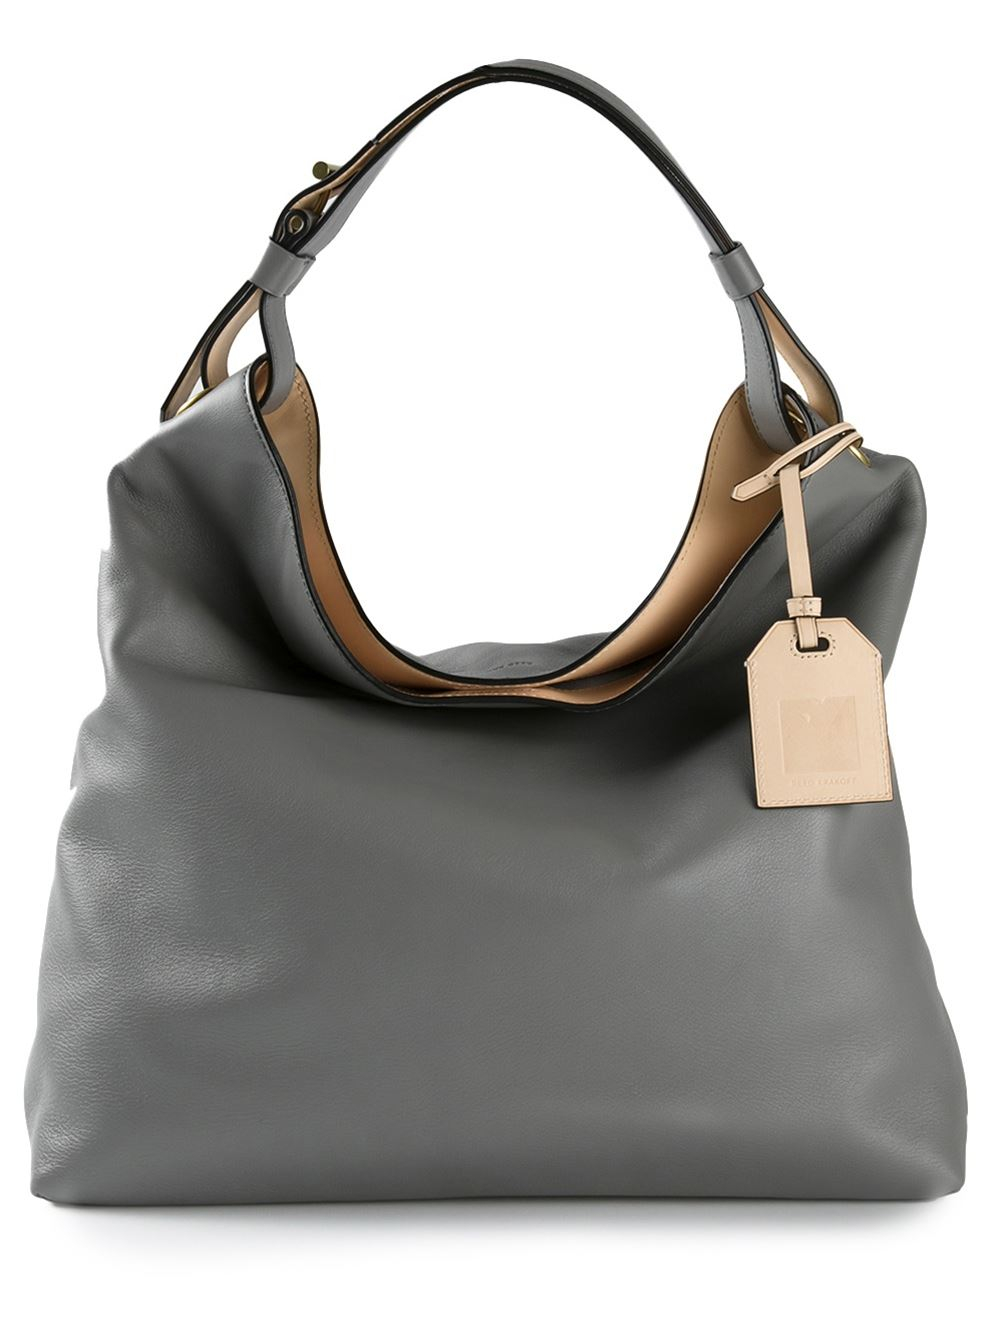 Reed krakoff 'Rdk Hobo' Bag in Gray | Lyst